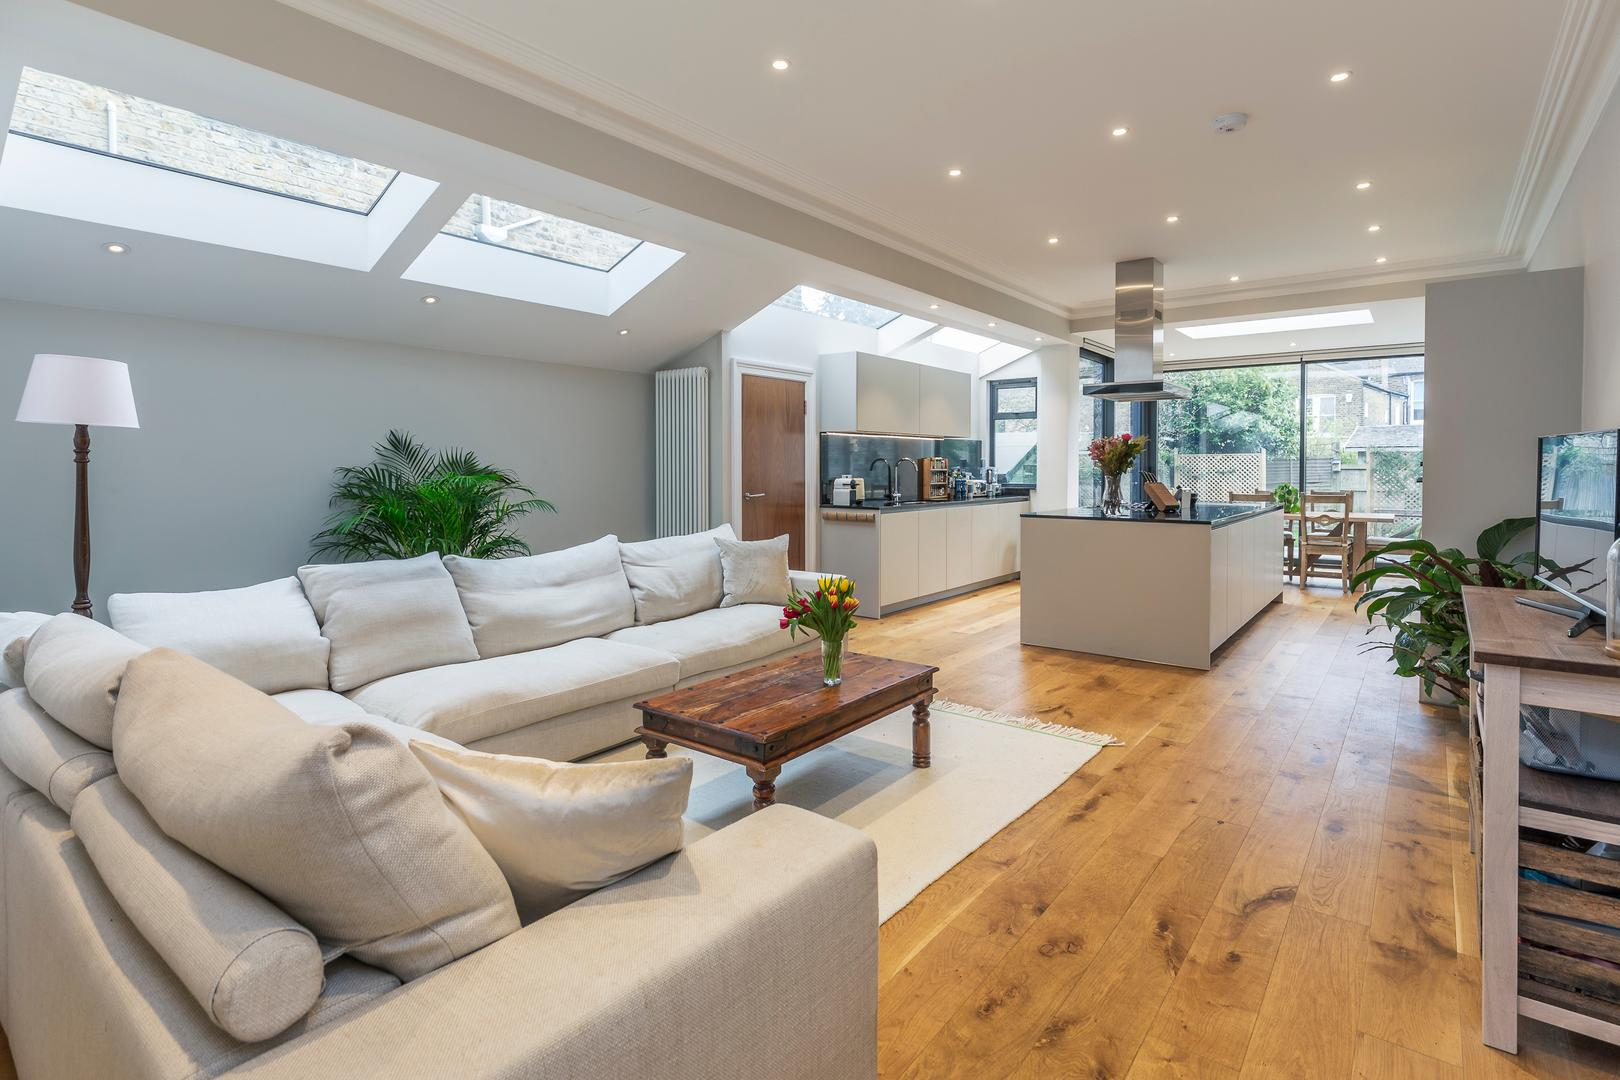 Property Image 1 - Stylish Maida Vale House with Spacious Master Suite